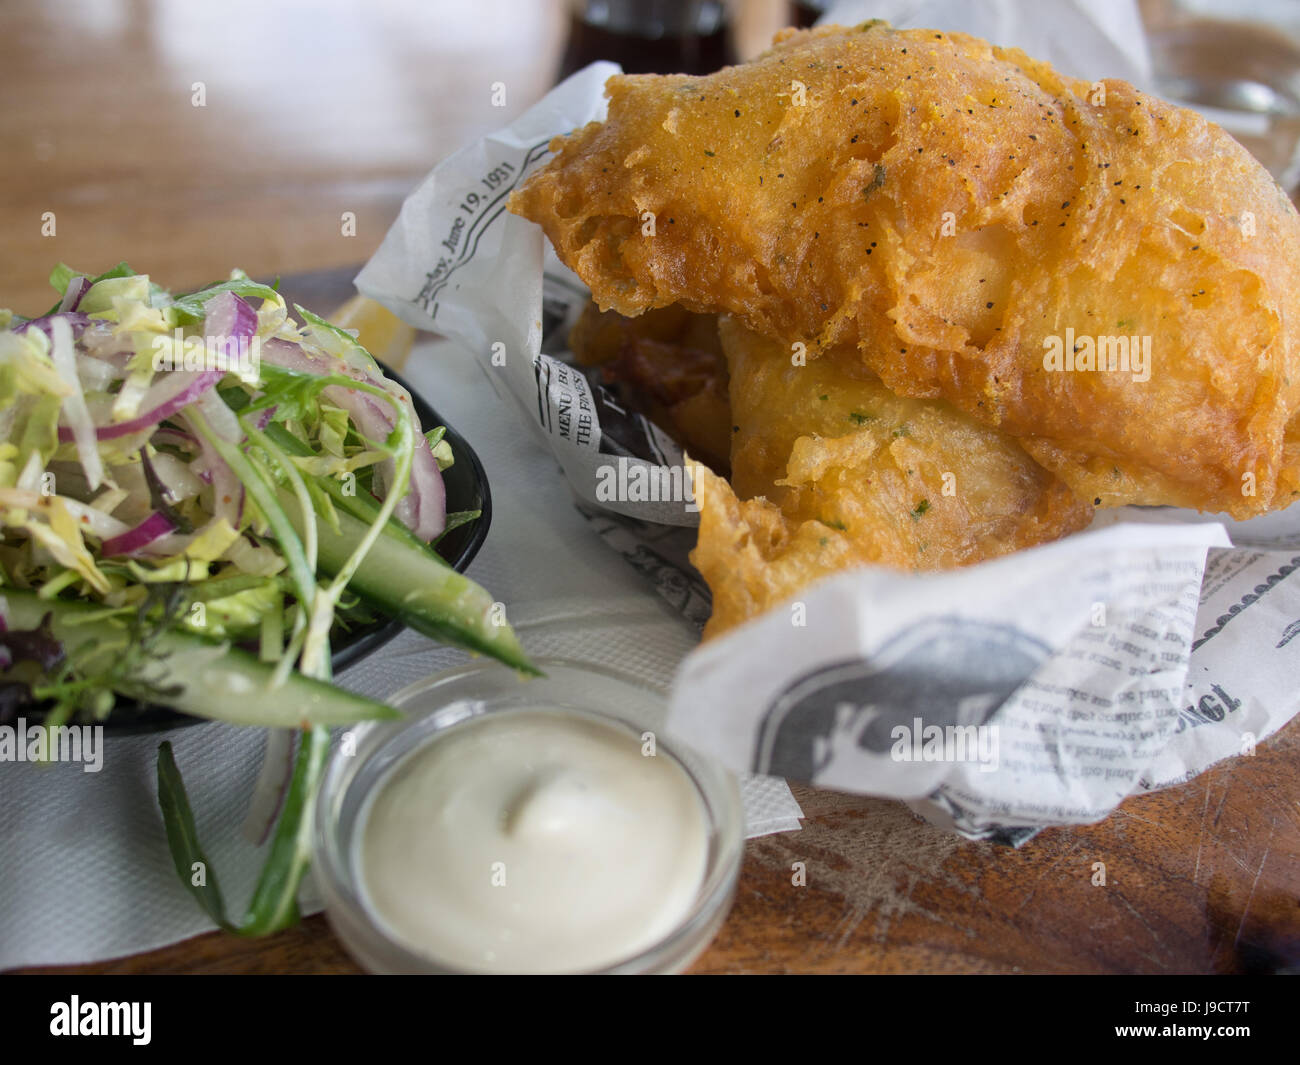 Fish And Chips Meals - Stock Image